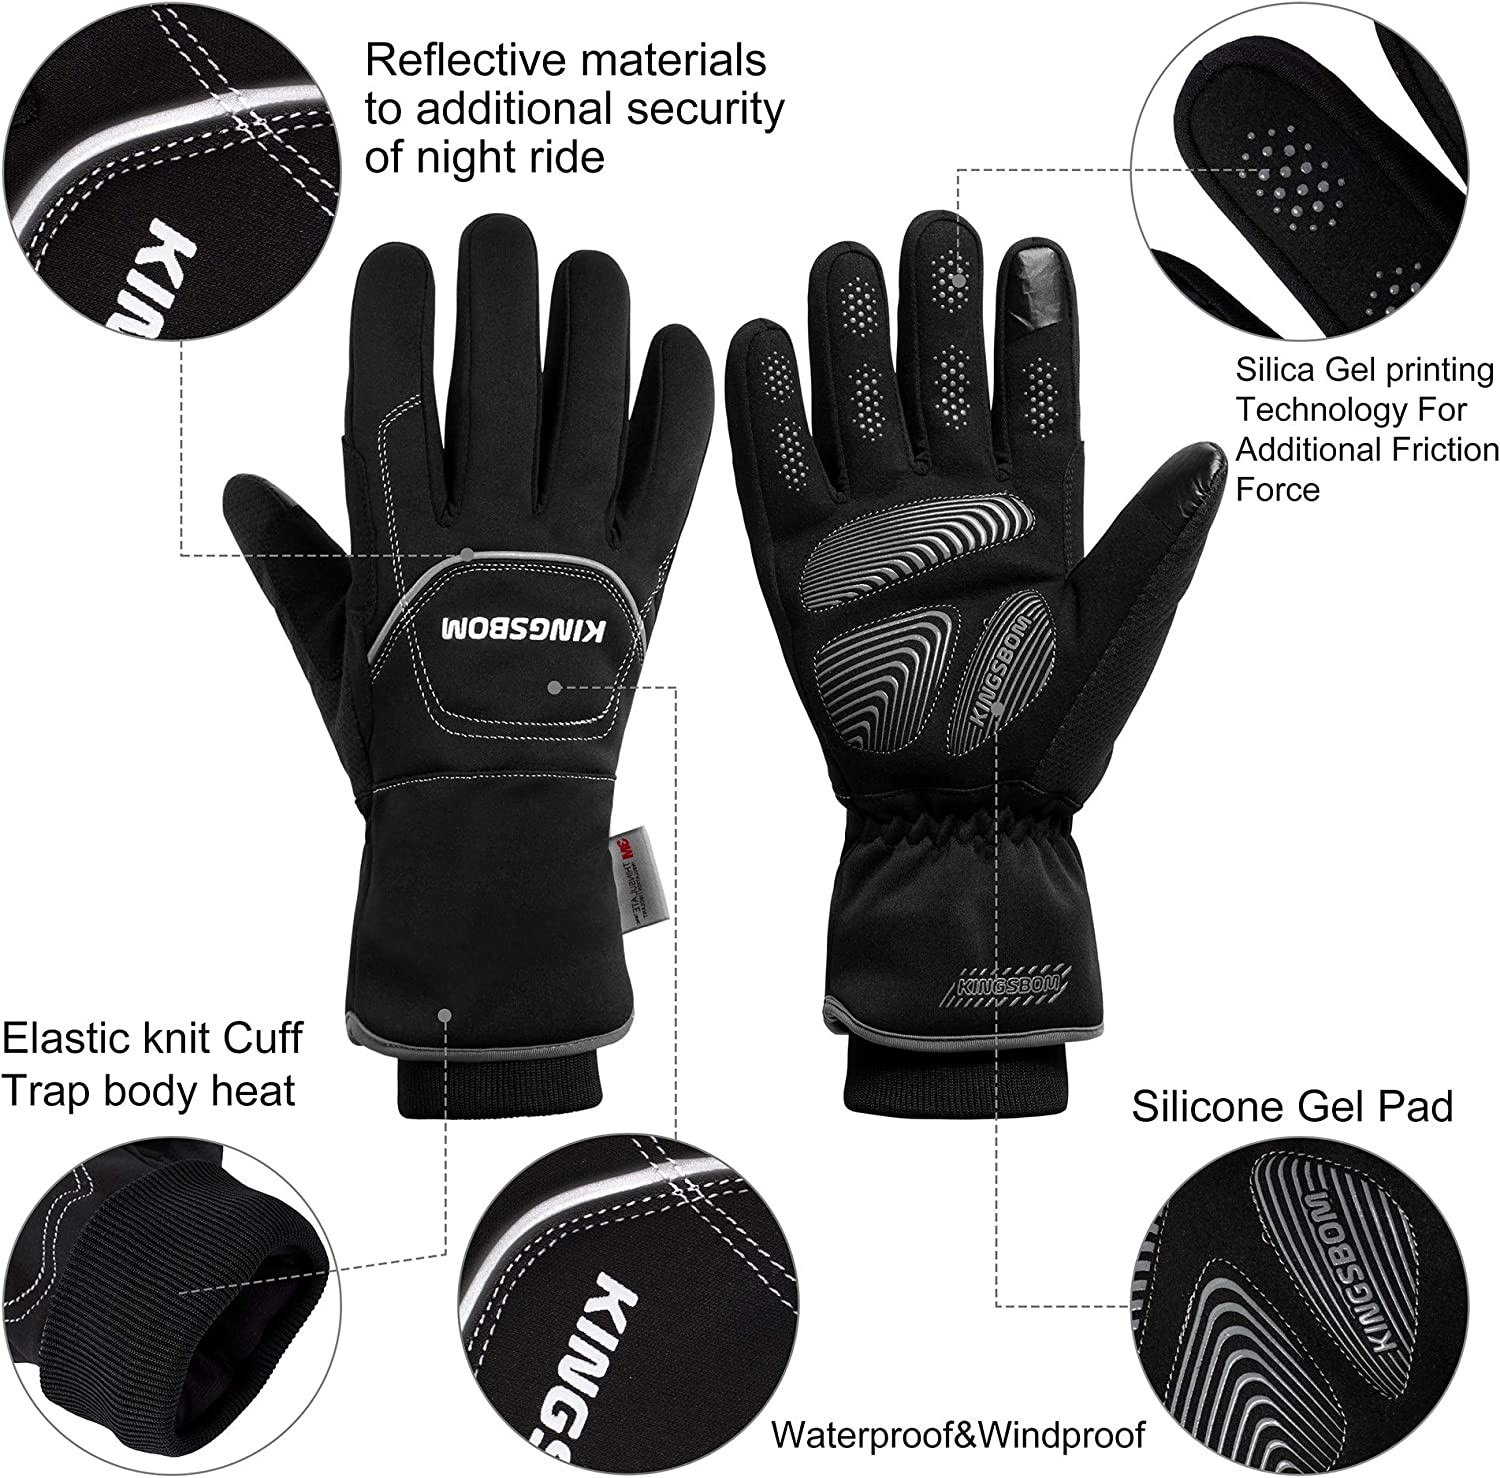 KINGSBOM Waterproof /& Windproof Thermal Gloves 3M Thinsulate Winter Touch Screen Warm Gloves For Women and Men Black For Cycling,Riding,Running,Outdoor Sports